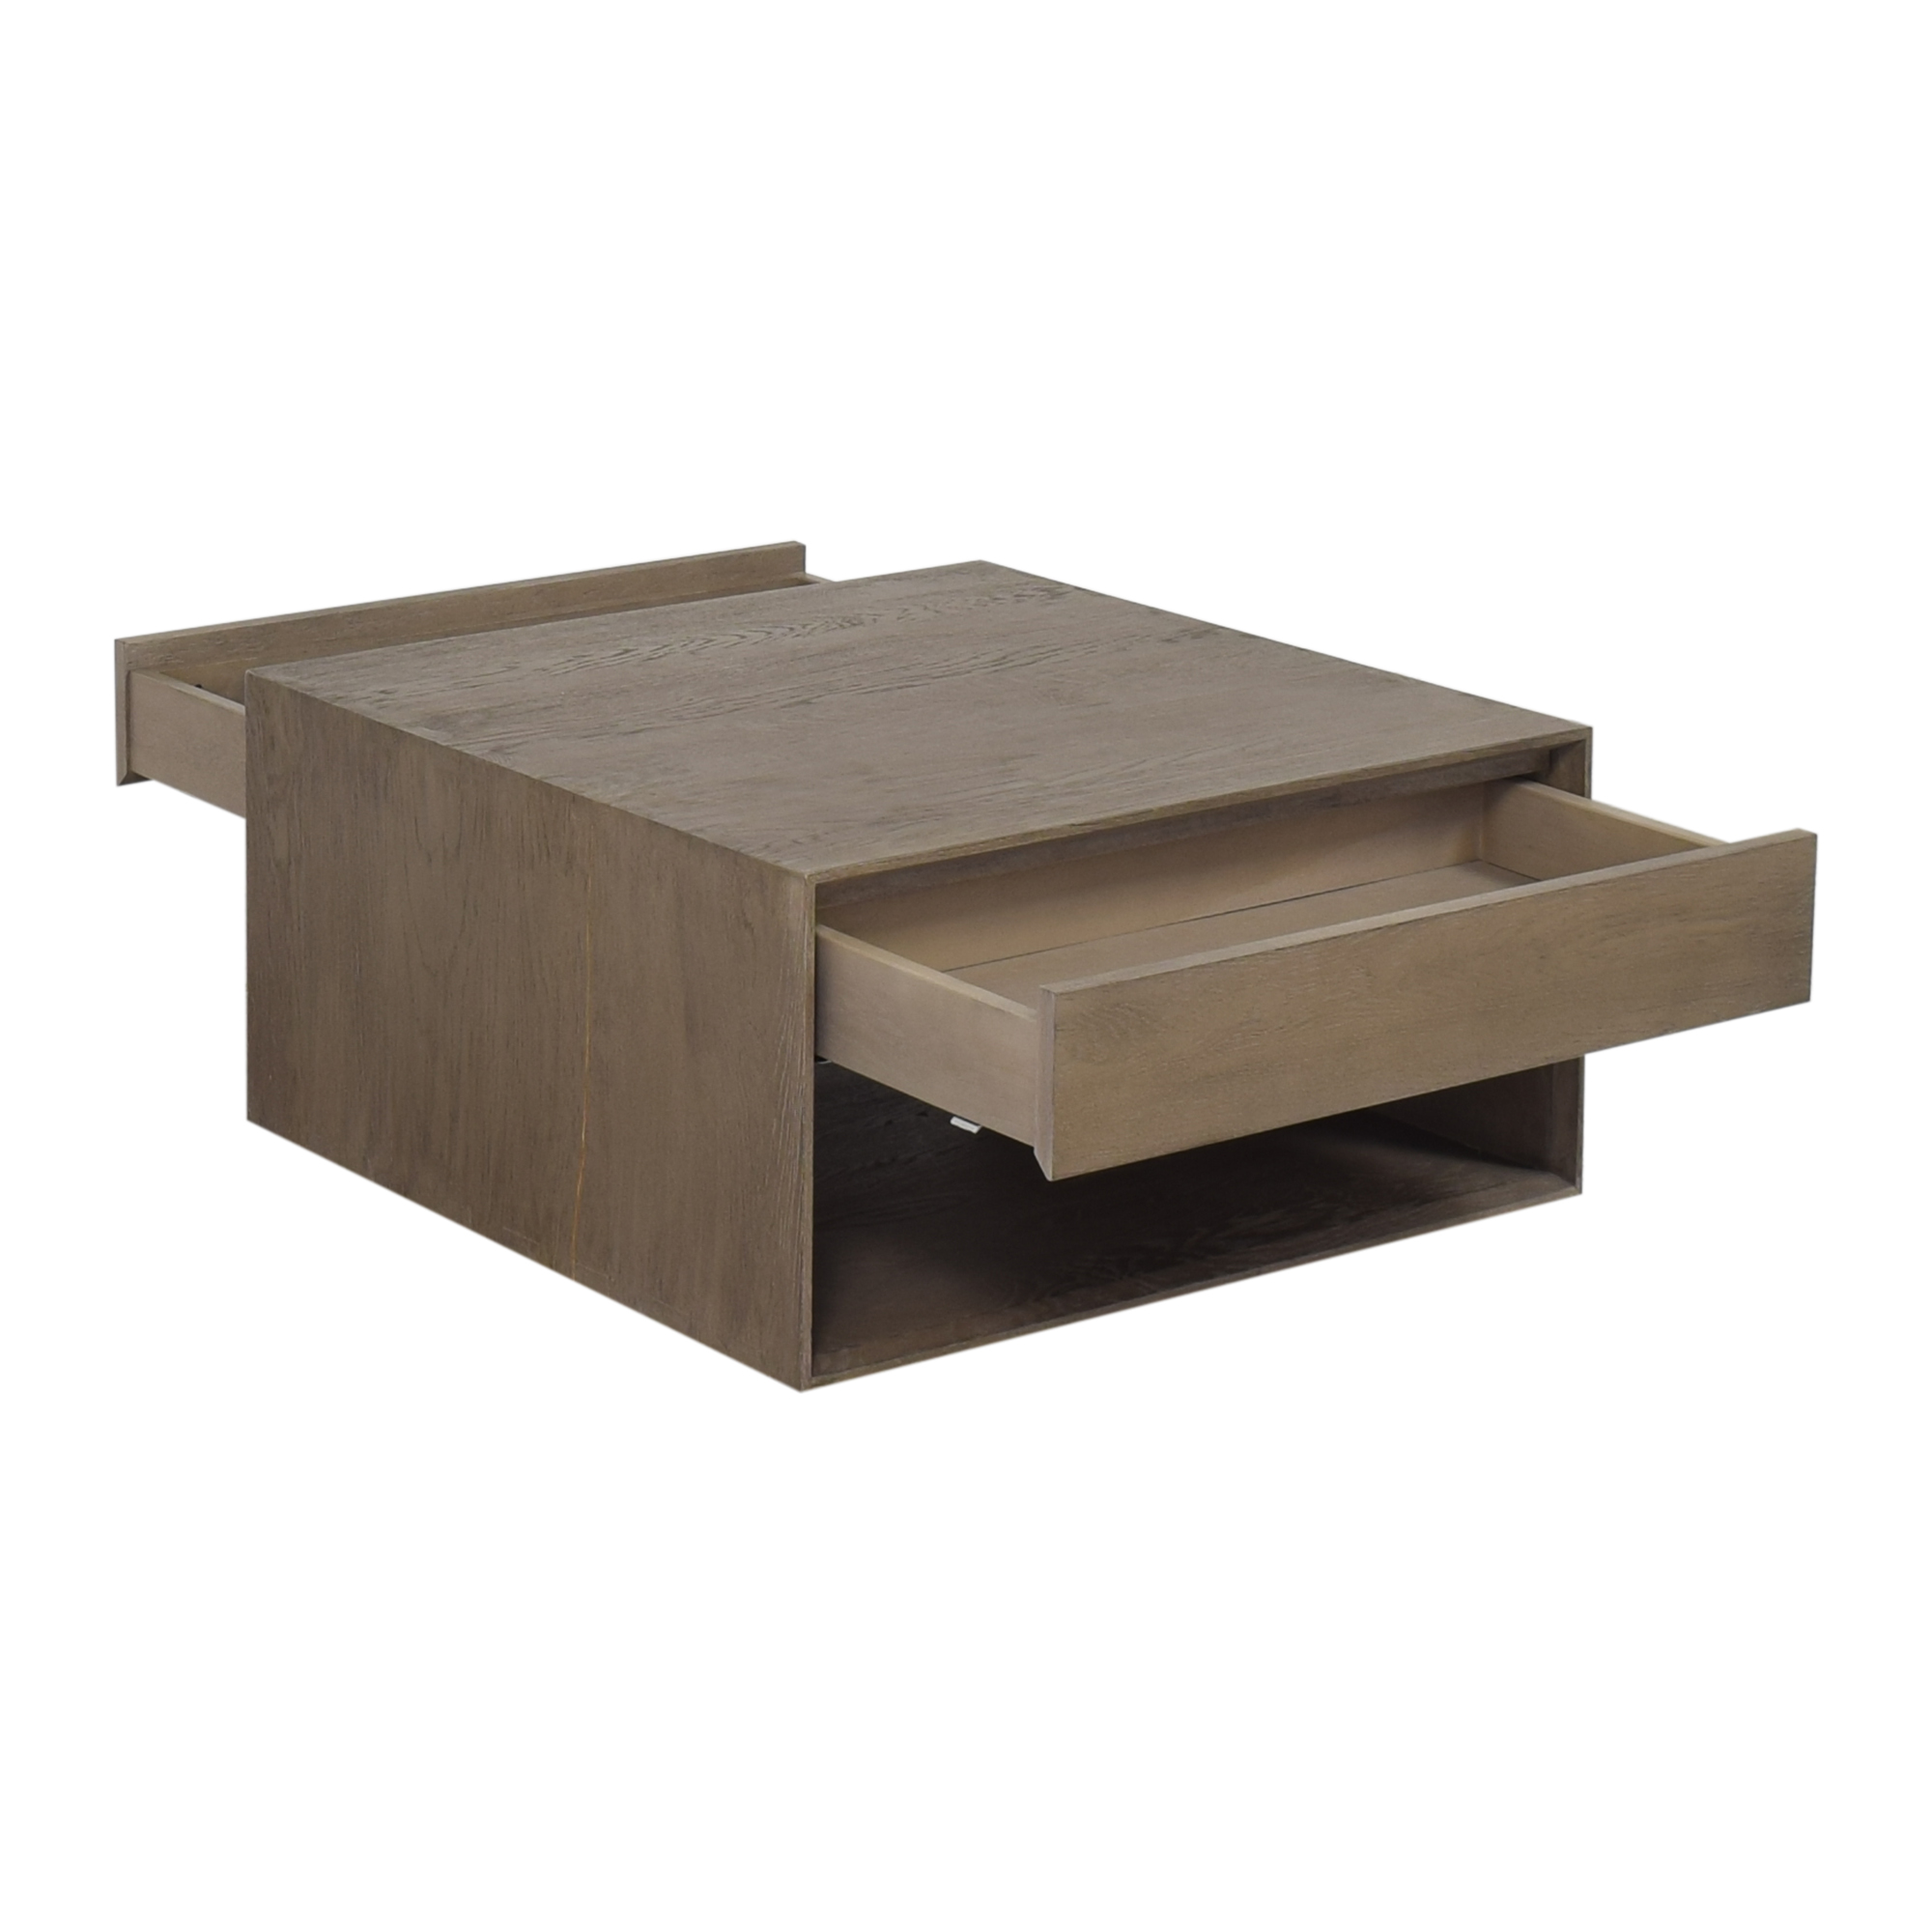 Crate & Barrel Crate & Barrel Ethan Square Coffee Table dimensions